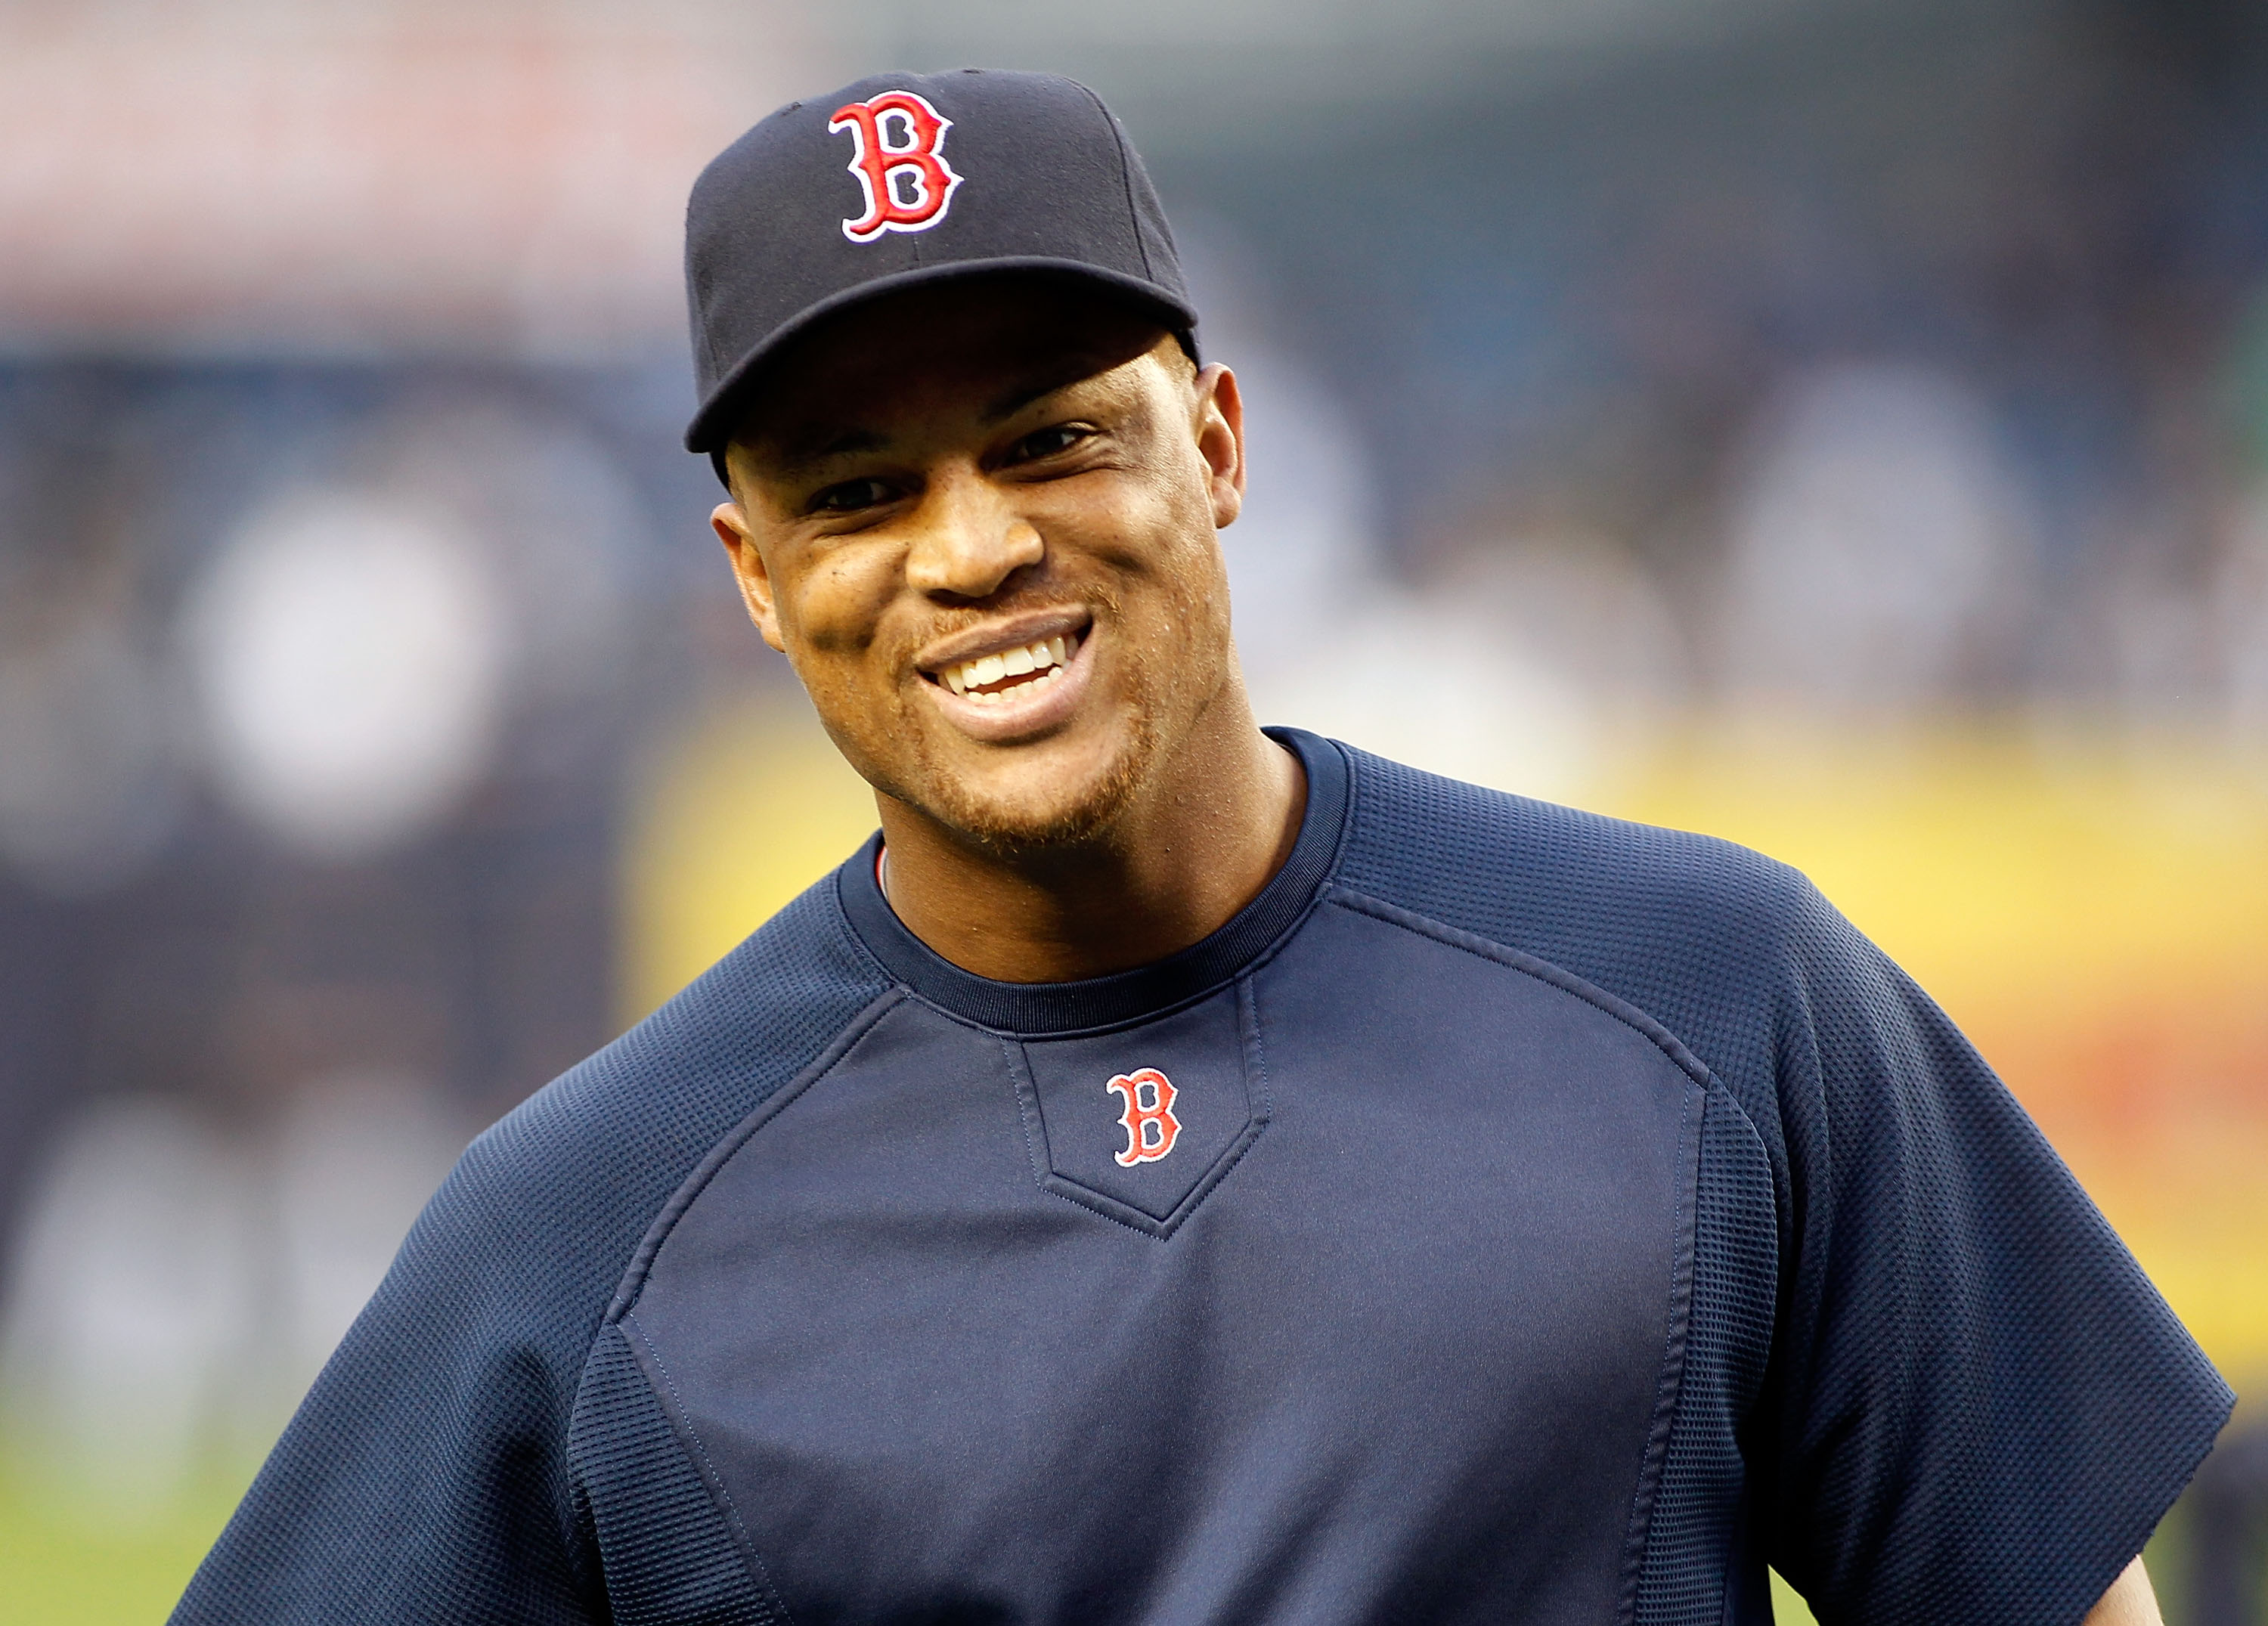 NEW YORK - SEPTEMBER 26:  Adrian Beltre #29 of the Boston Red Sox looks on during warm-ups prior to the start of the game against the New York Yankees on September 26, 2010 at Yankee Stadium in the Bronx borough of New York City.  (Photo by Mike Stobe/Get